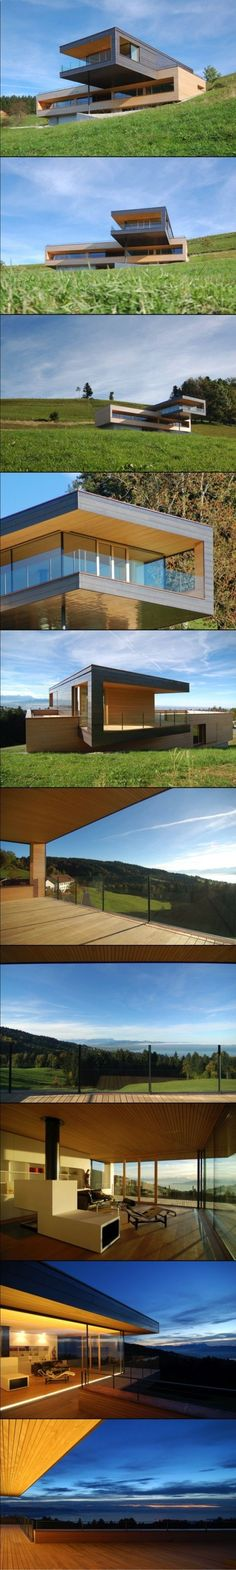 Container House - A Cantilevered Home Overlooking a Lake in Austria House Dornbin is a single family home overlooking the Rhine Valley, Lake Constance, and the Vorarlberg mountains in Austria by k_m architektur. The home sits on a sloped green meadow with a cantilevered top floor clad in copper that features an overhang for sun protection in the summer. - Who Else Wants Simple Step-By-Step Plans To Design And Build A Container Home From Scratch?